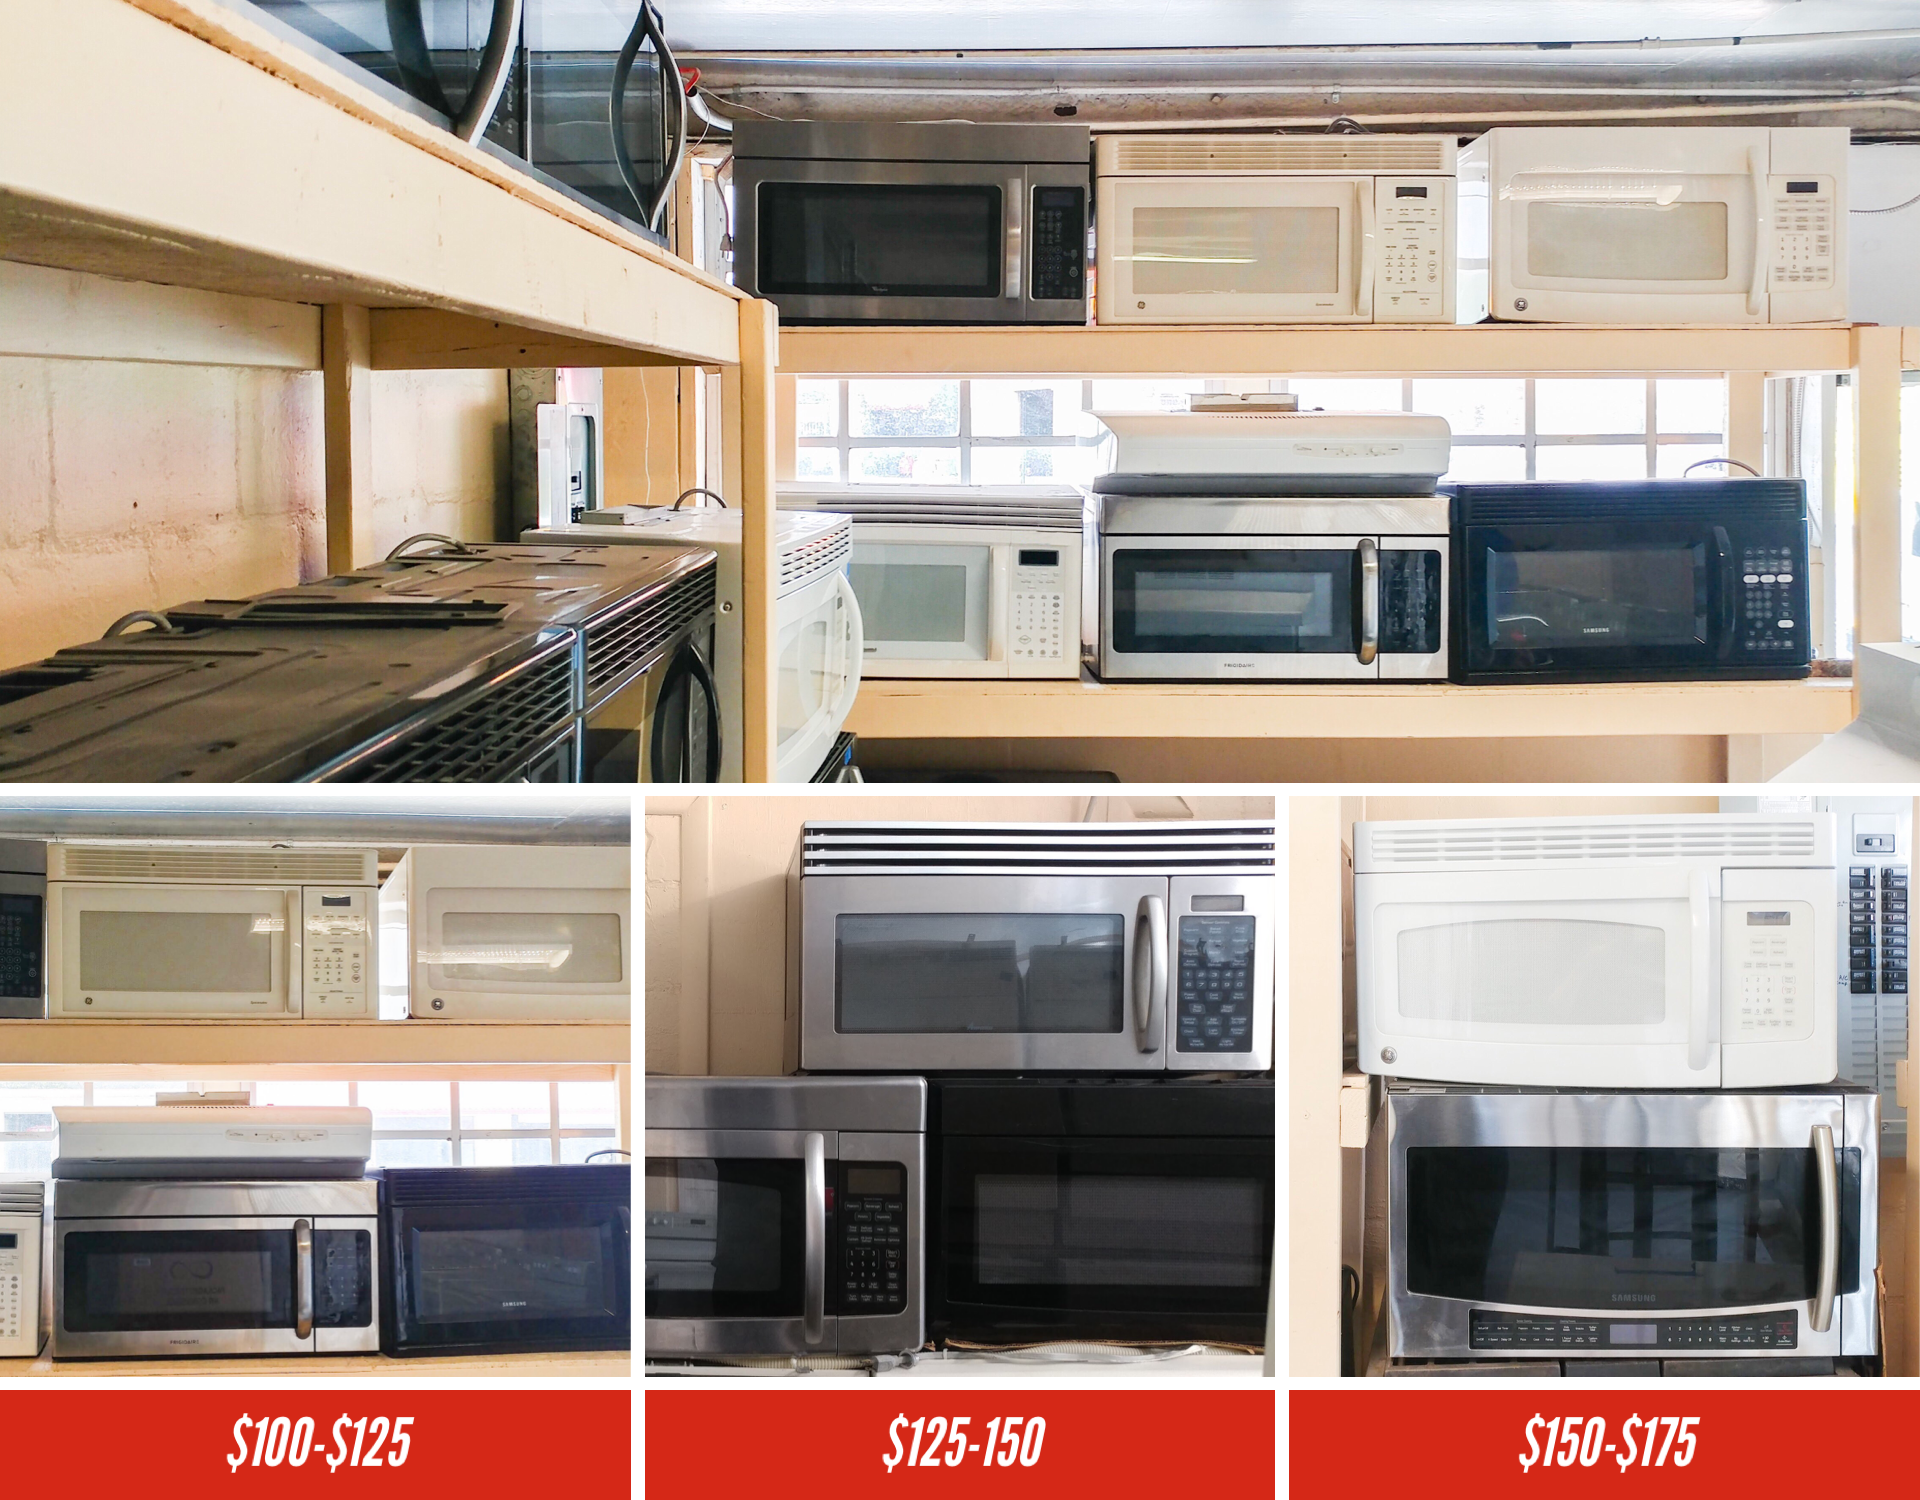 Microwaves For Sale In Tampa Fl